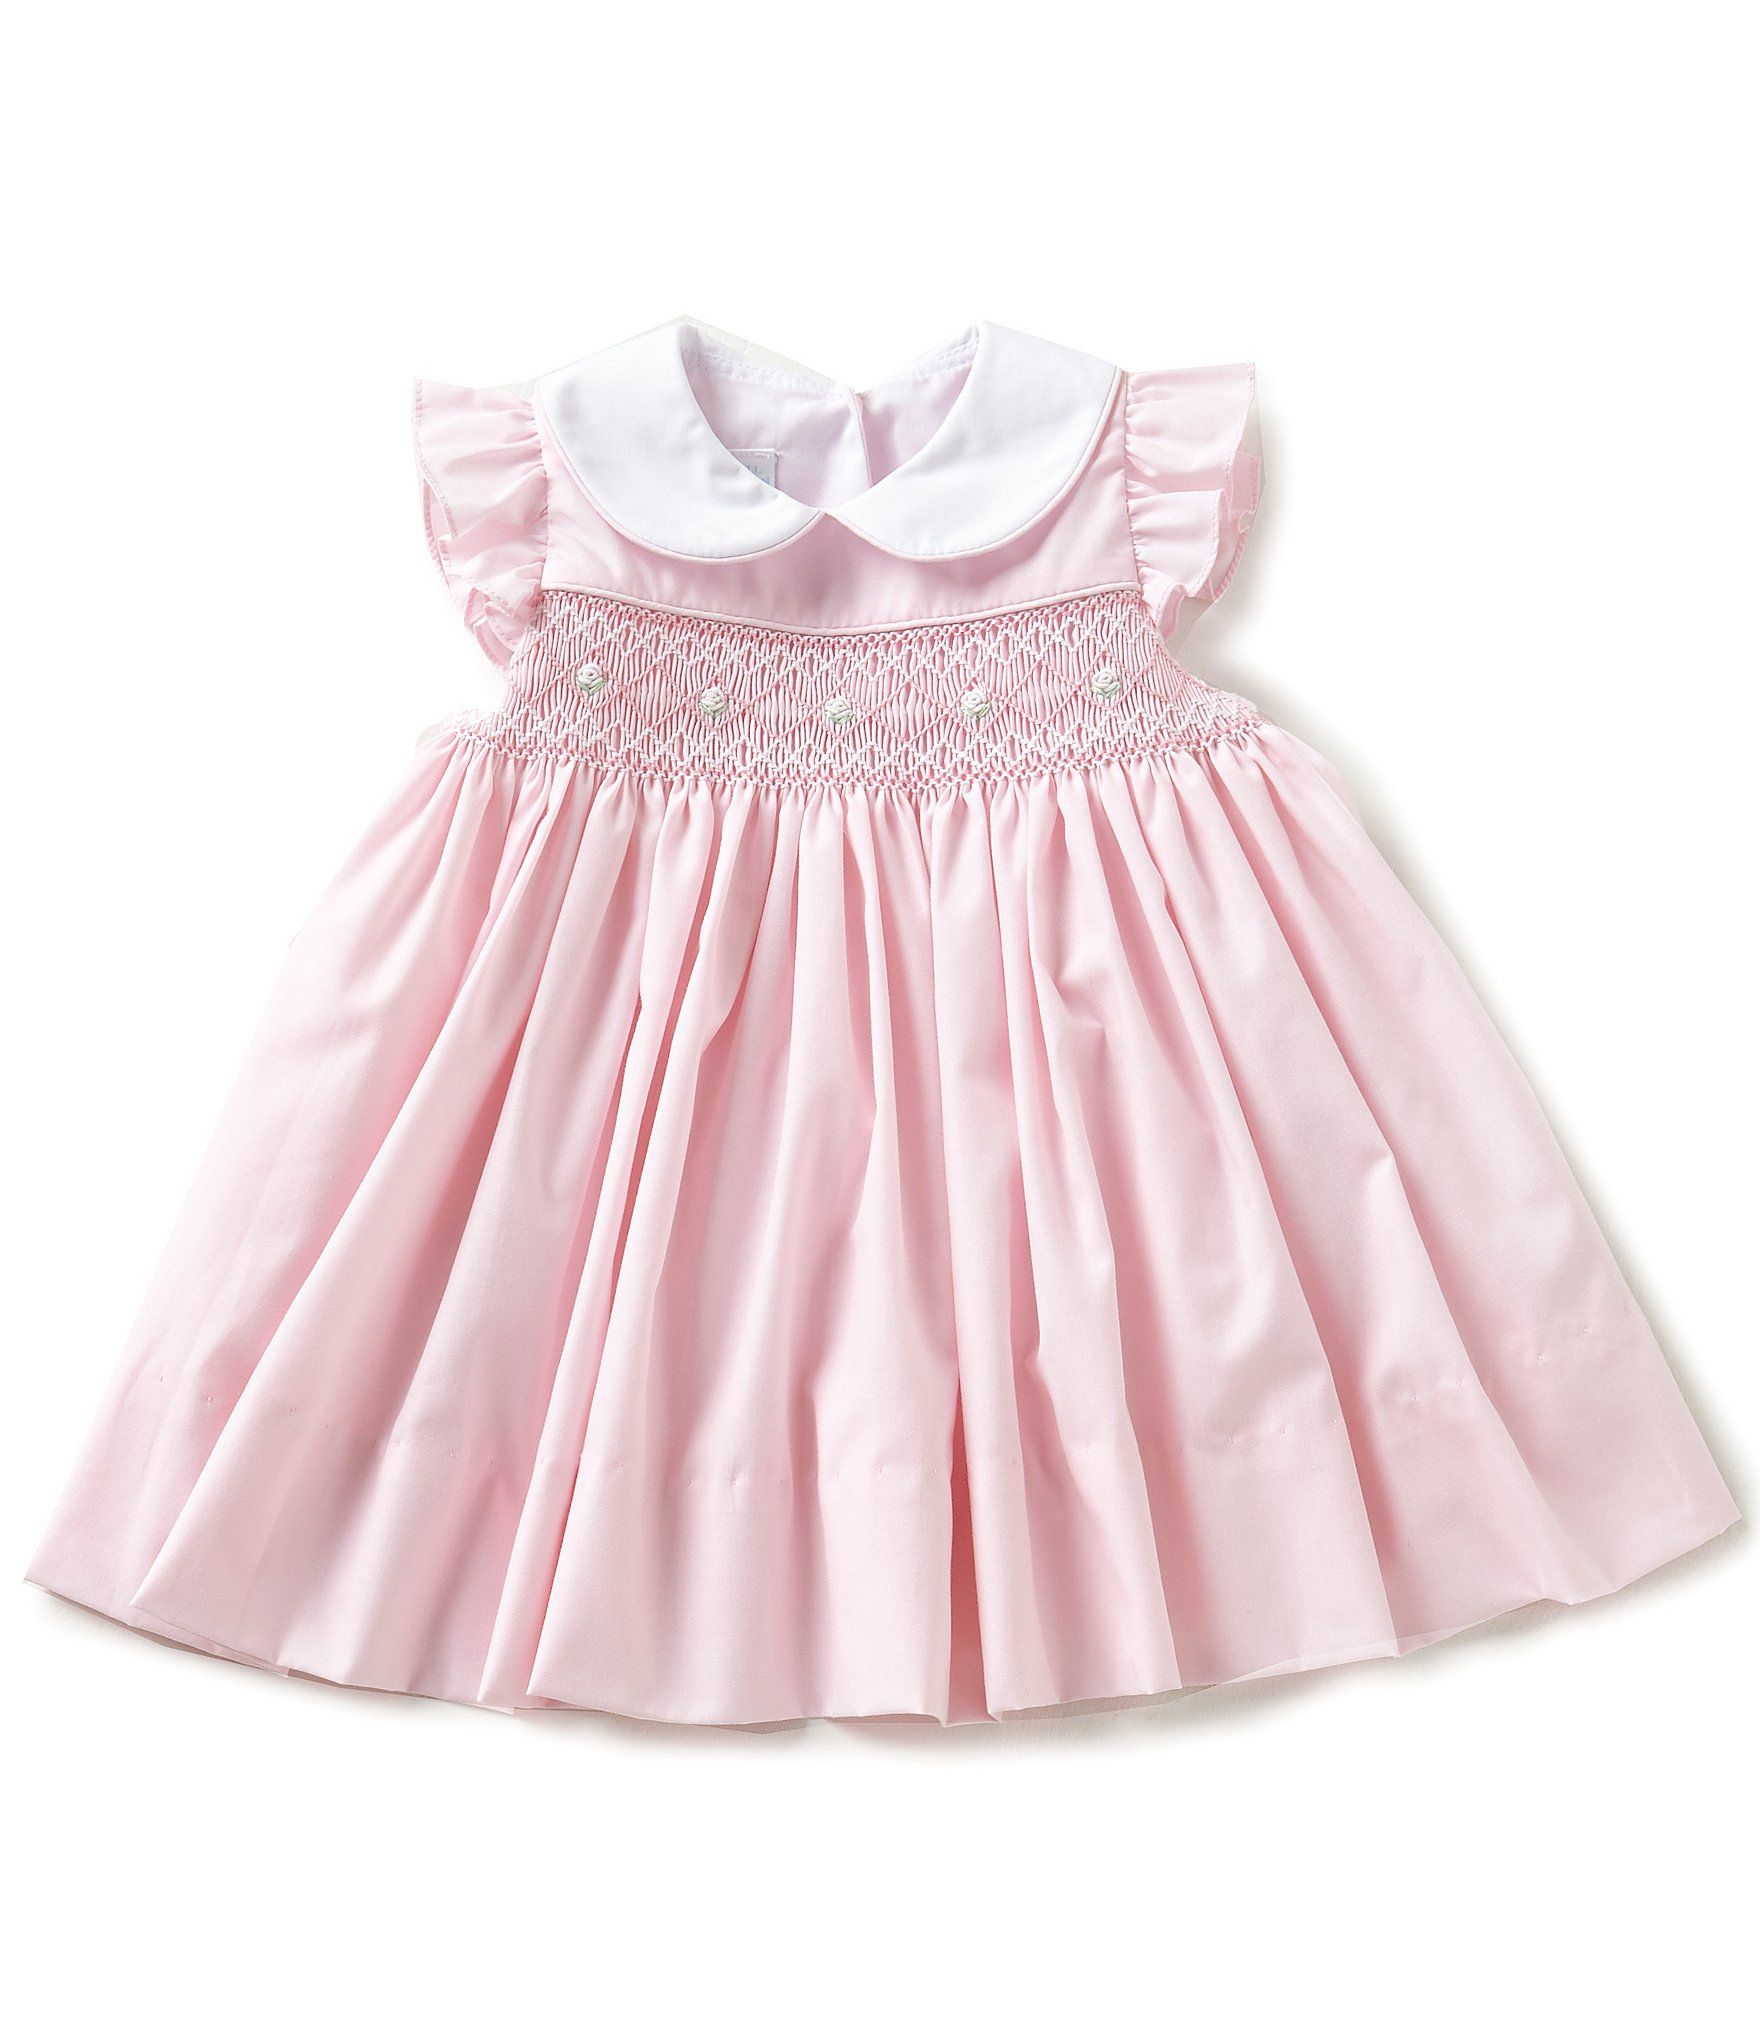 a379223e76d9 Shop for Edgehill Collection Baby Girls 3-24 Months Smocked Flutter-Sleeve  Dress at Dillards.com. Visit Dillards.com to find clothing